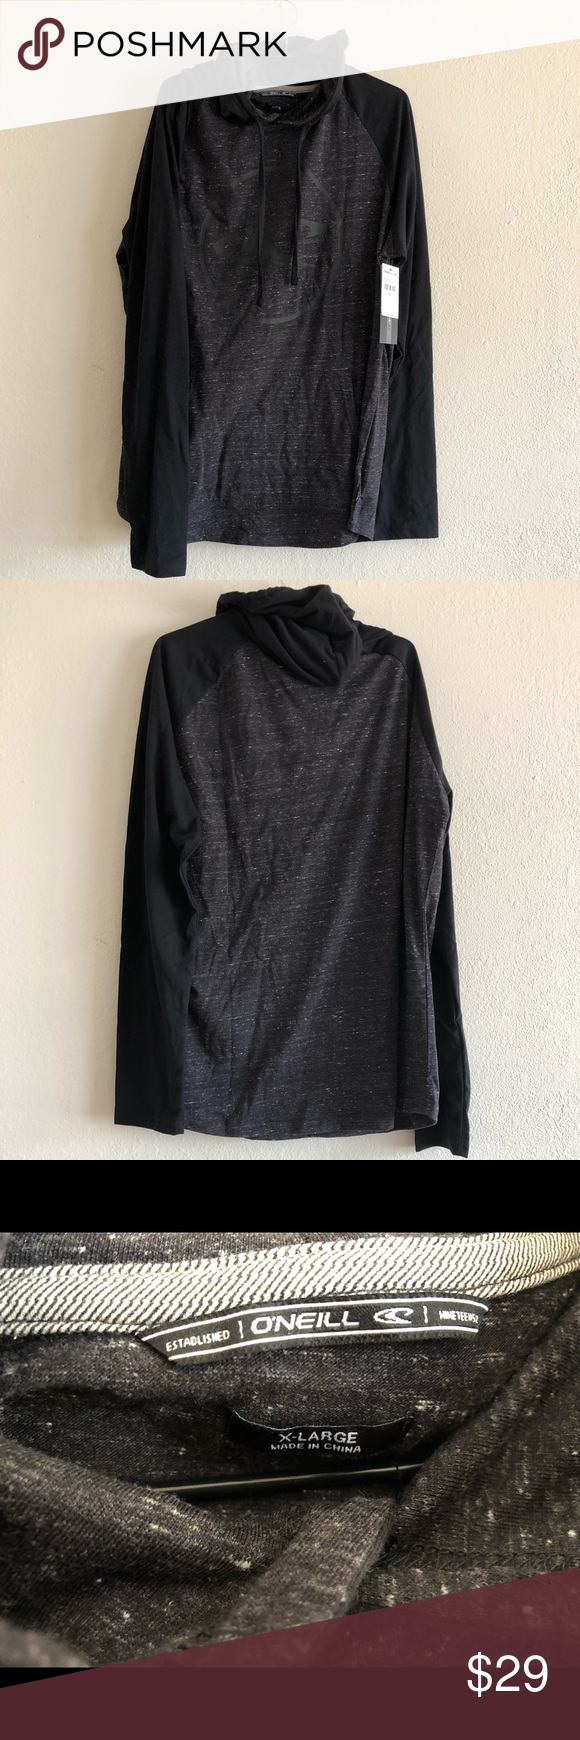 Brand New O Neill Hooded Ringside Pullover Shirt Size Men S Xl 60 Cotton 40 Polyester Black Gray Brand New Measure Pullover Shirt Clothes Design Pullover